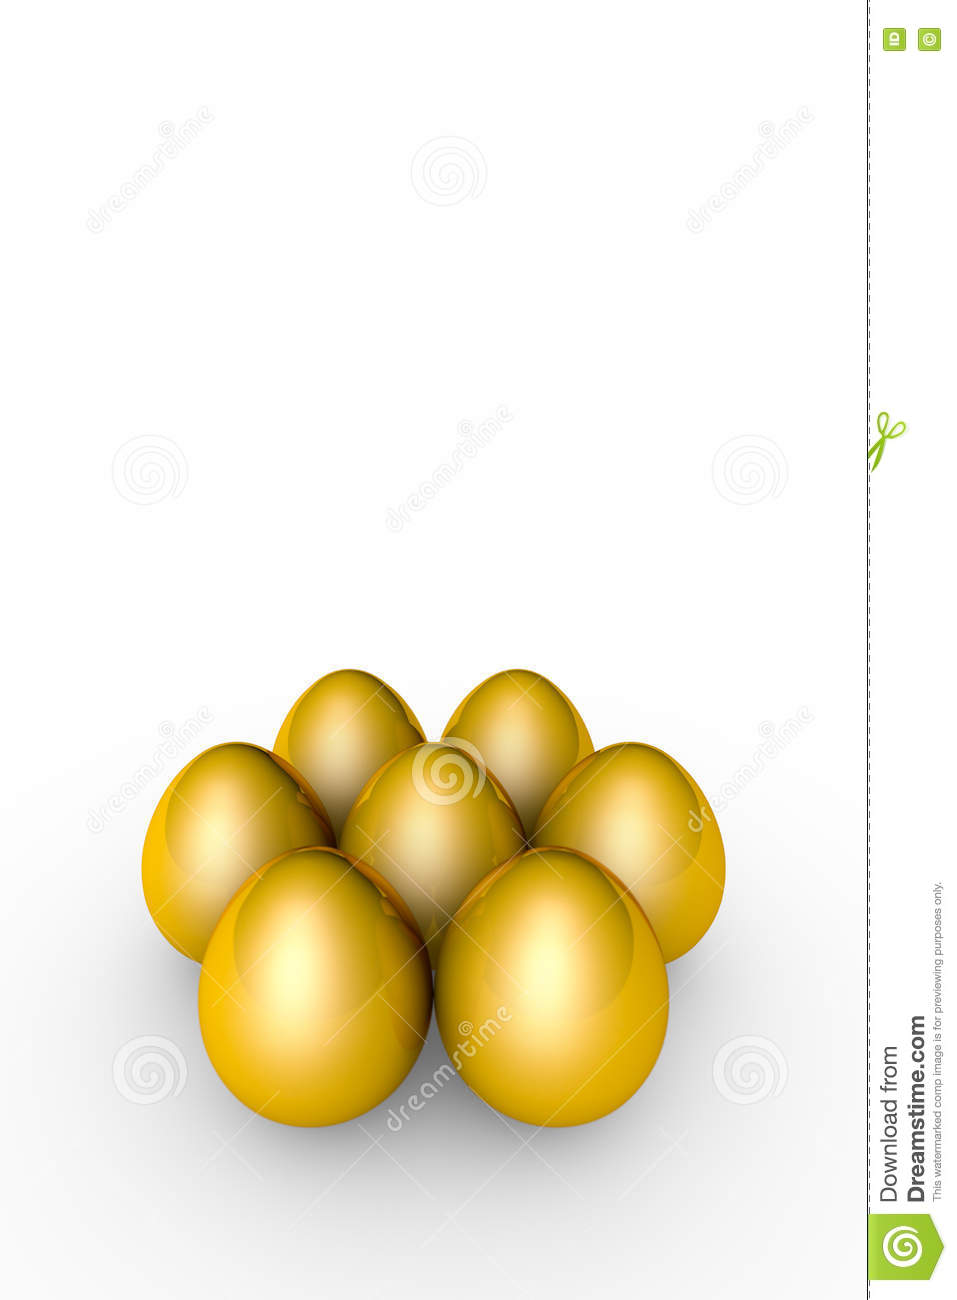 Investment and profit. Golden eggs. 3D illustration render